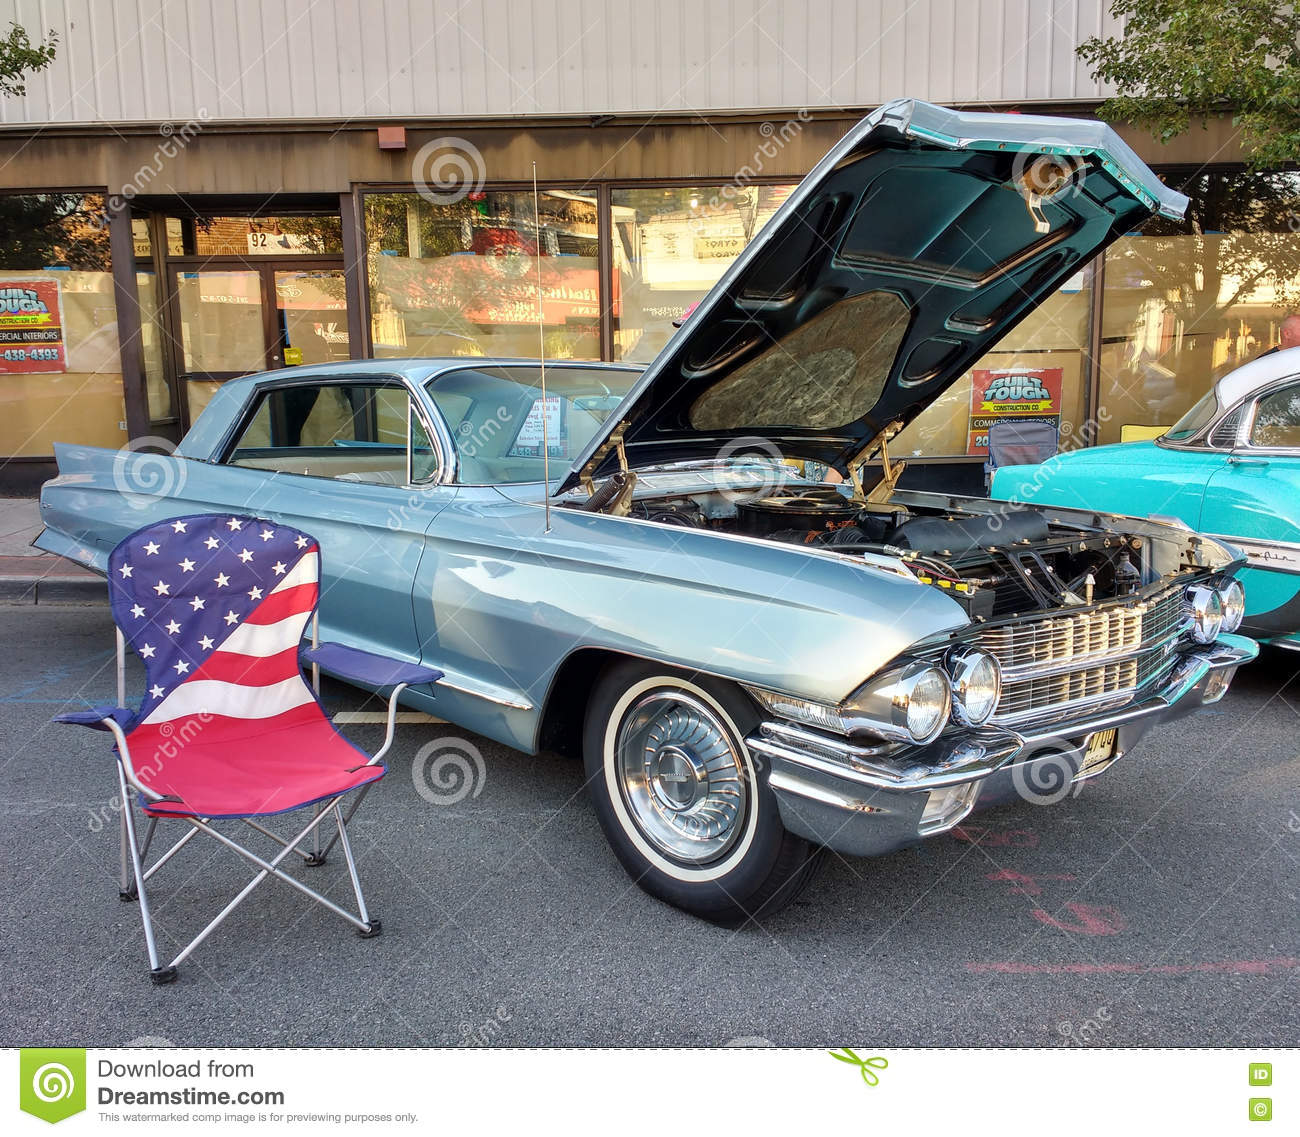 American Flag Lawn Chair Near A Classic Car At A Car Show Editorial - Car show usa